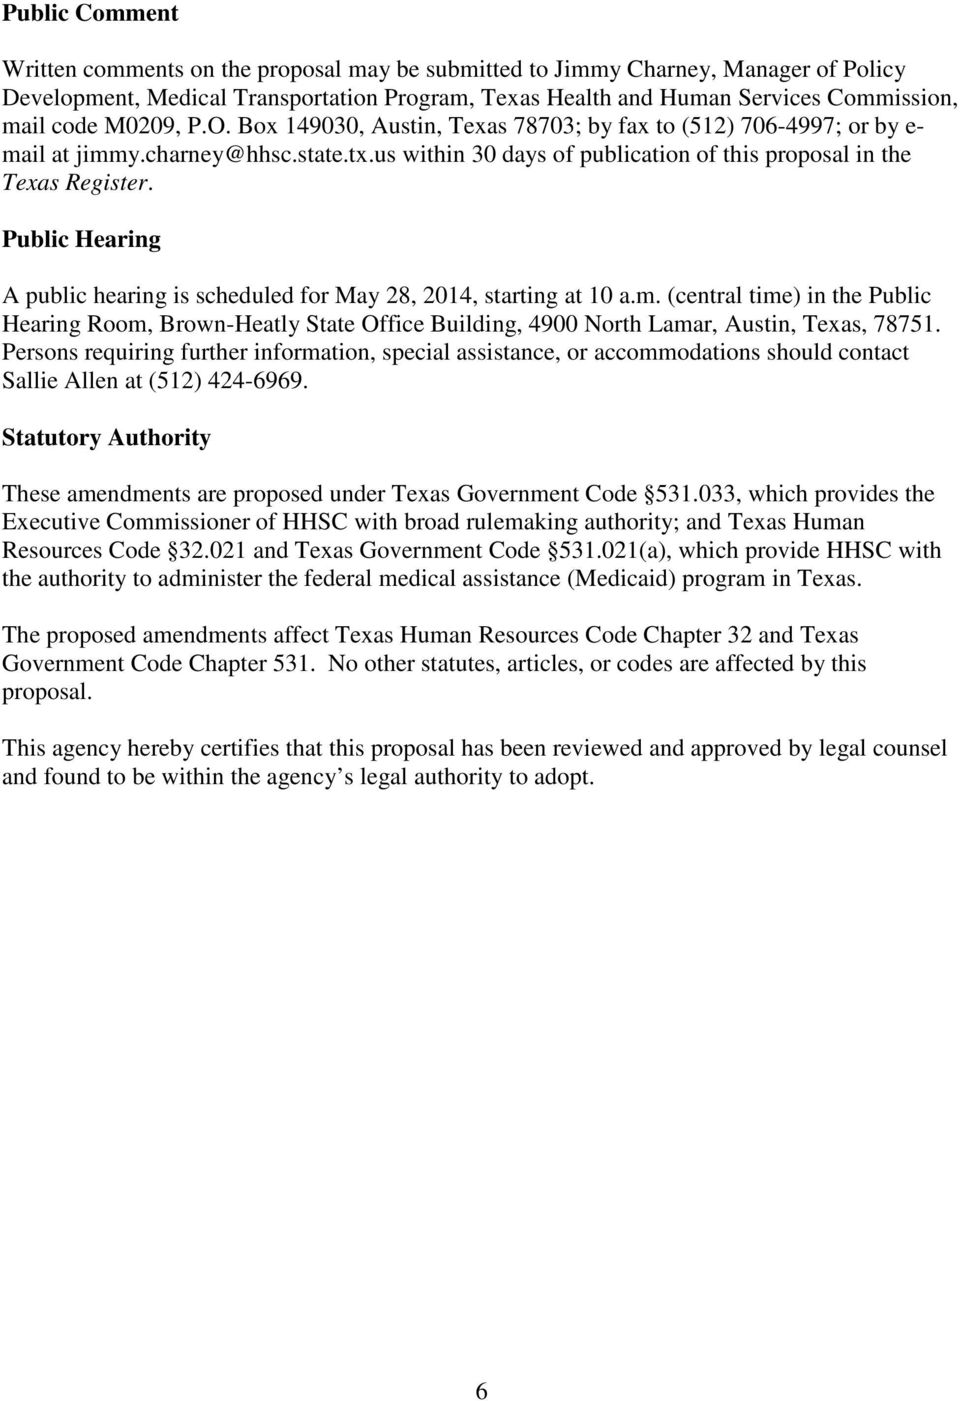 Public Hearing A public hearing is scheduled for May 28, 2014, starting at 10 a.m.